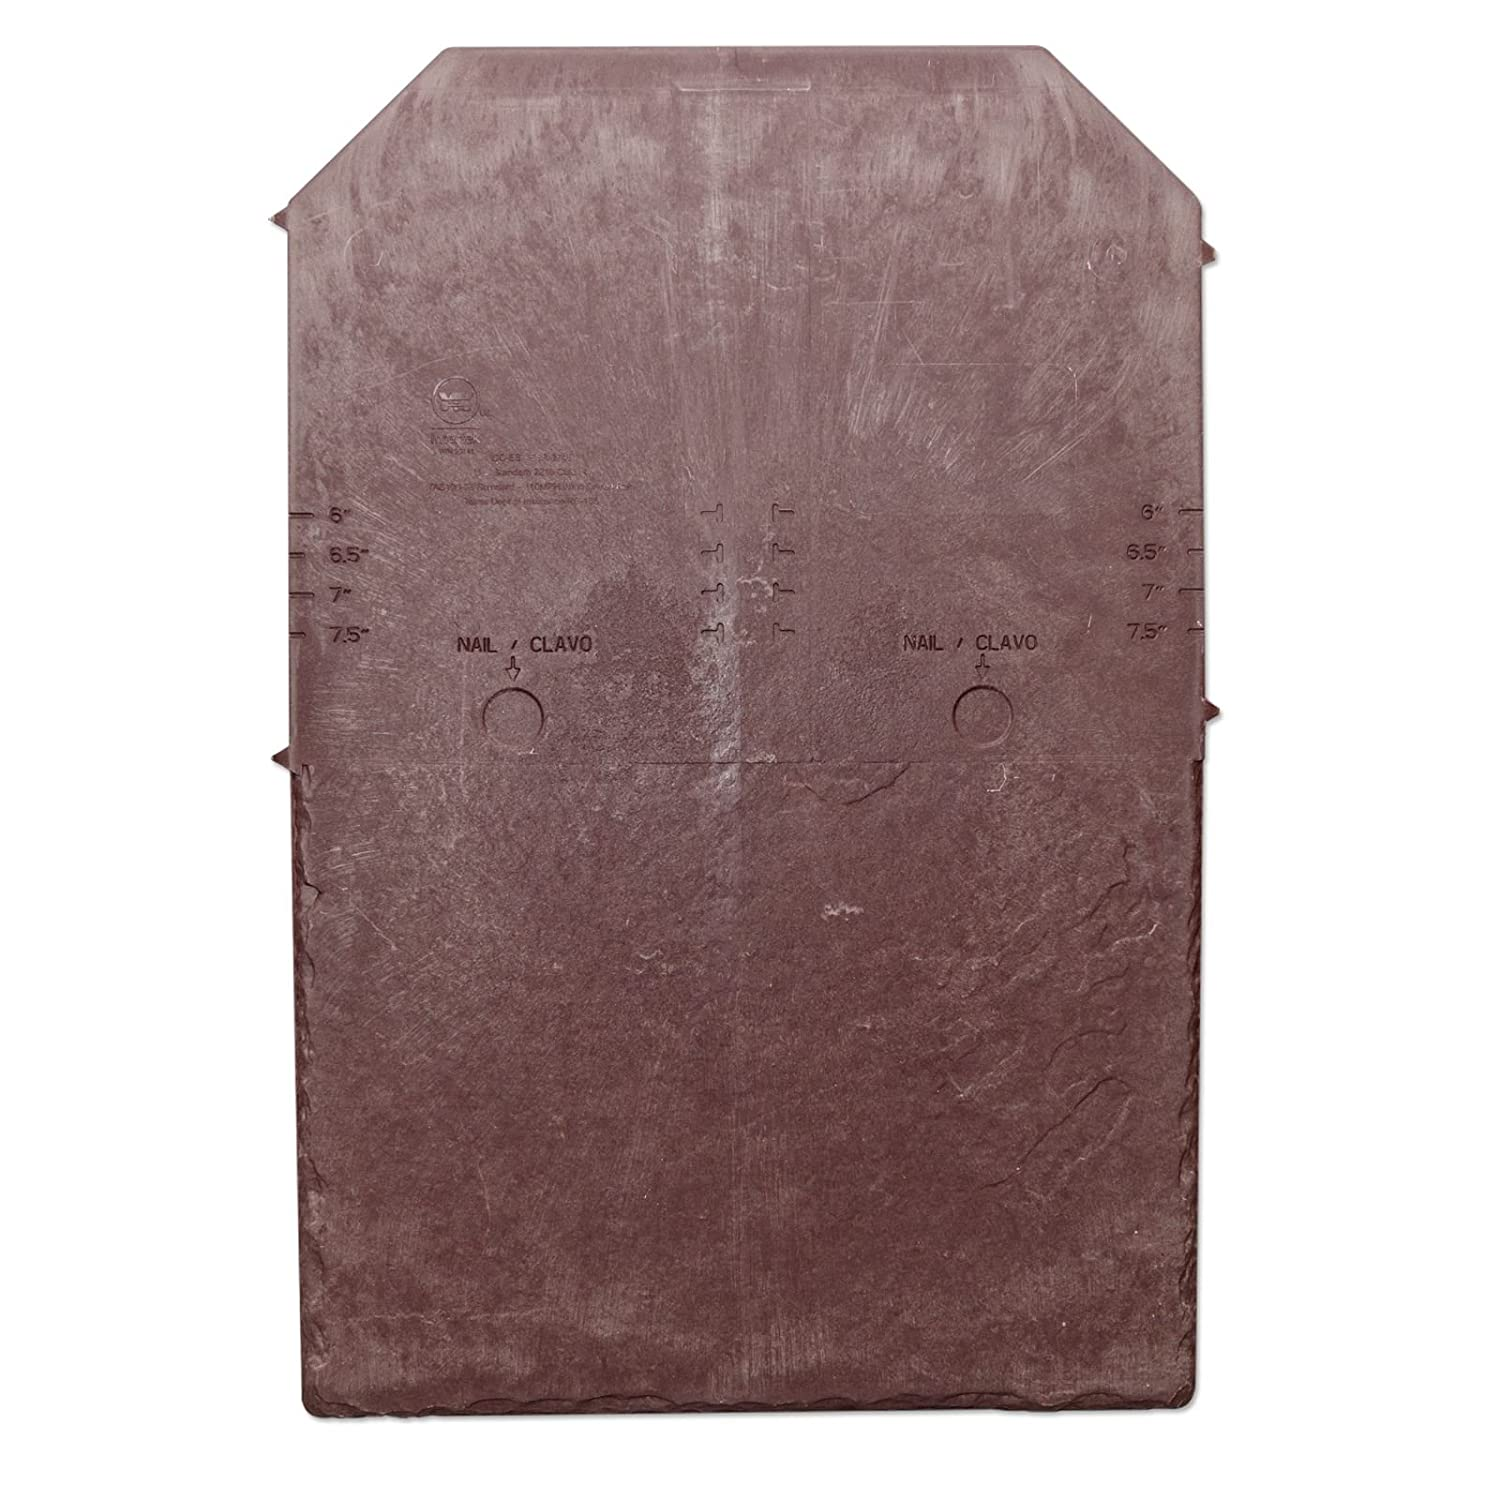 Tapco Slate Synthetic Roof Tile (25 Pack) - Brick Red Truly PVC Supplies